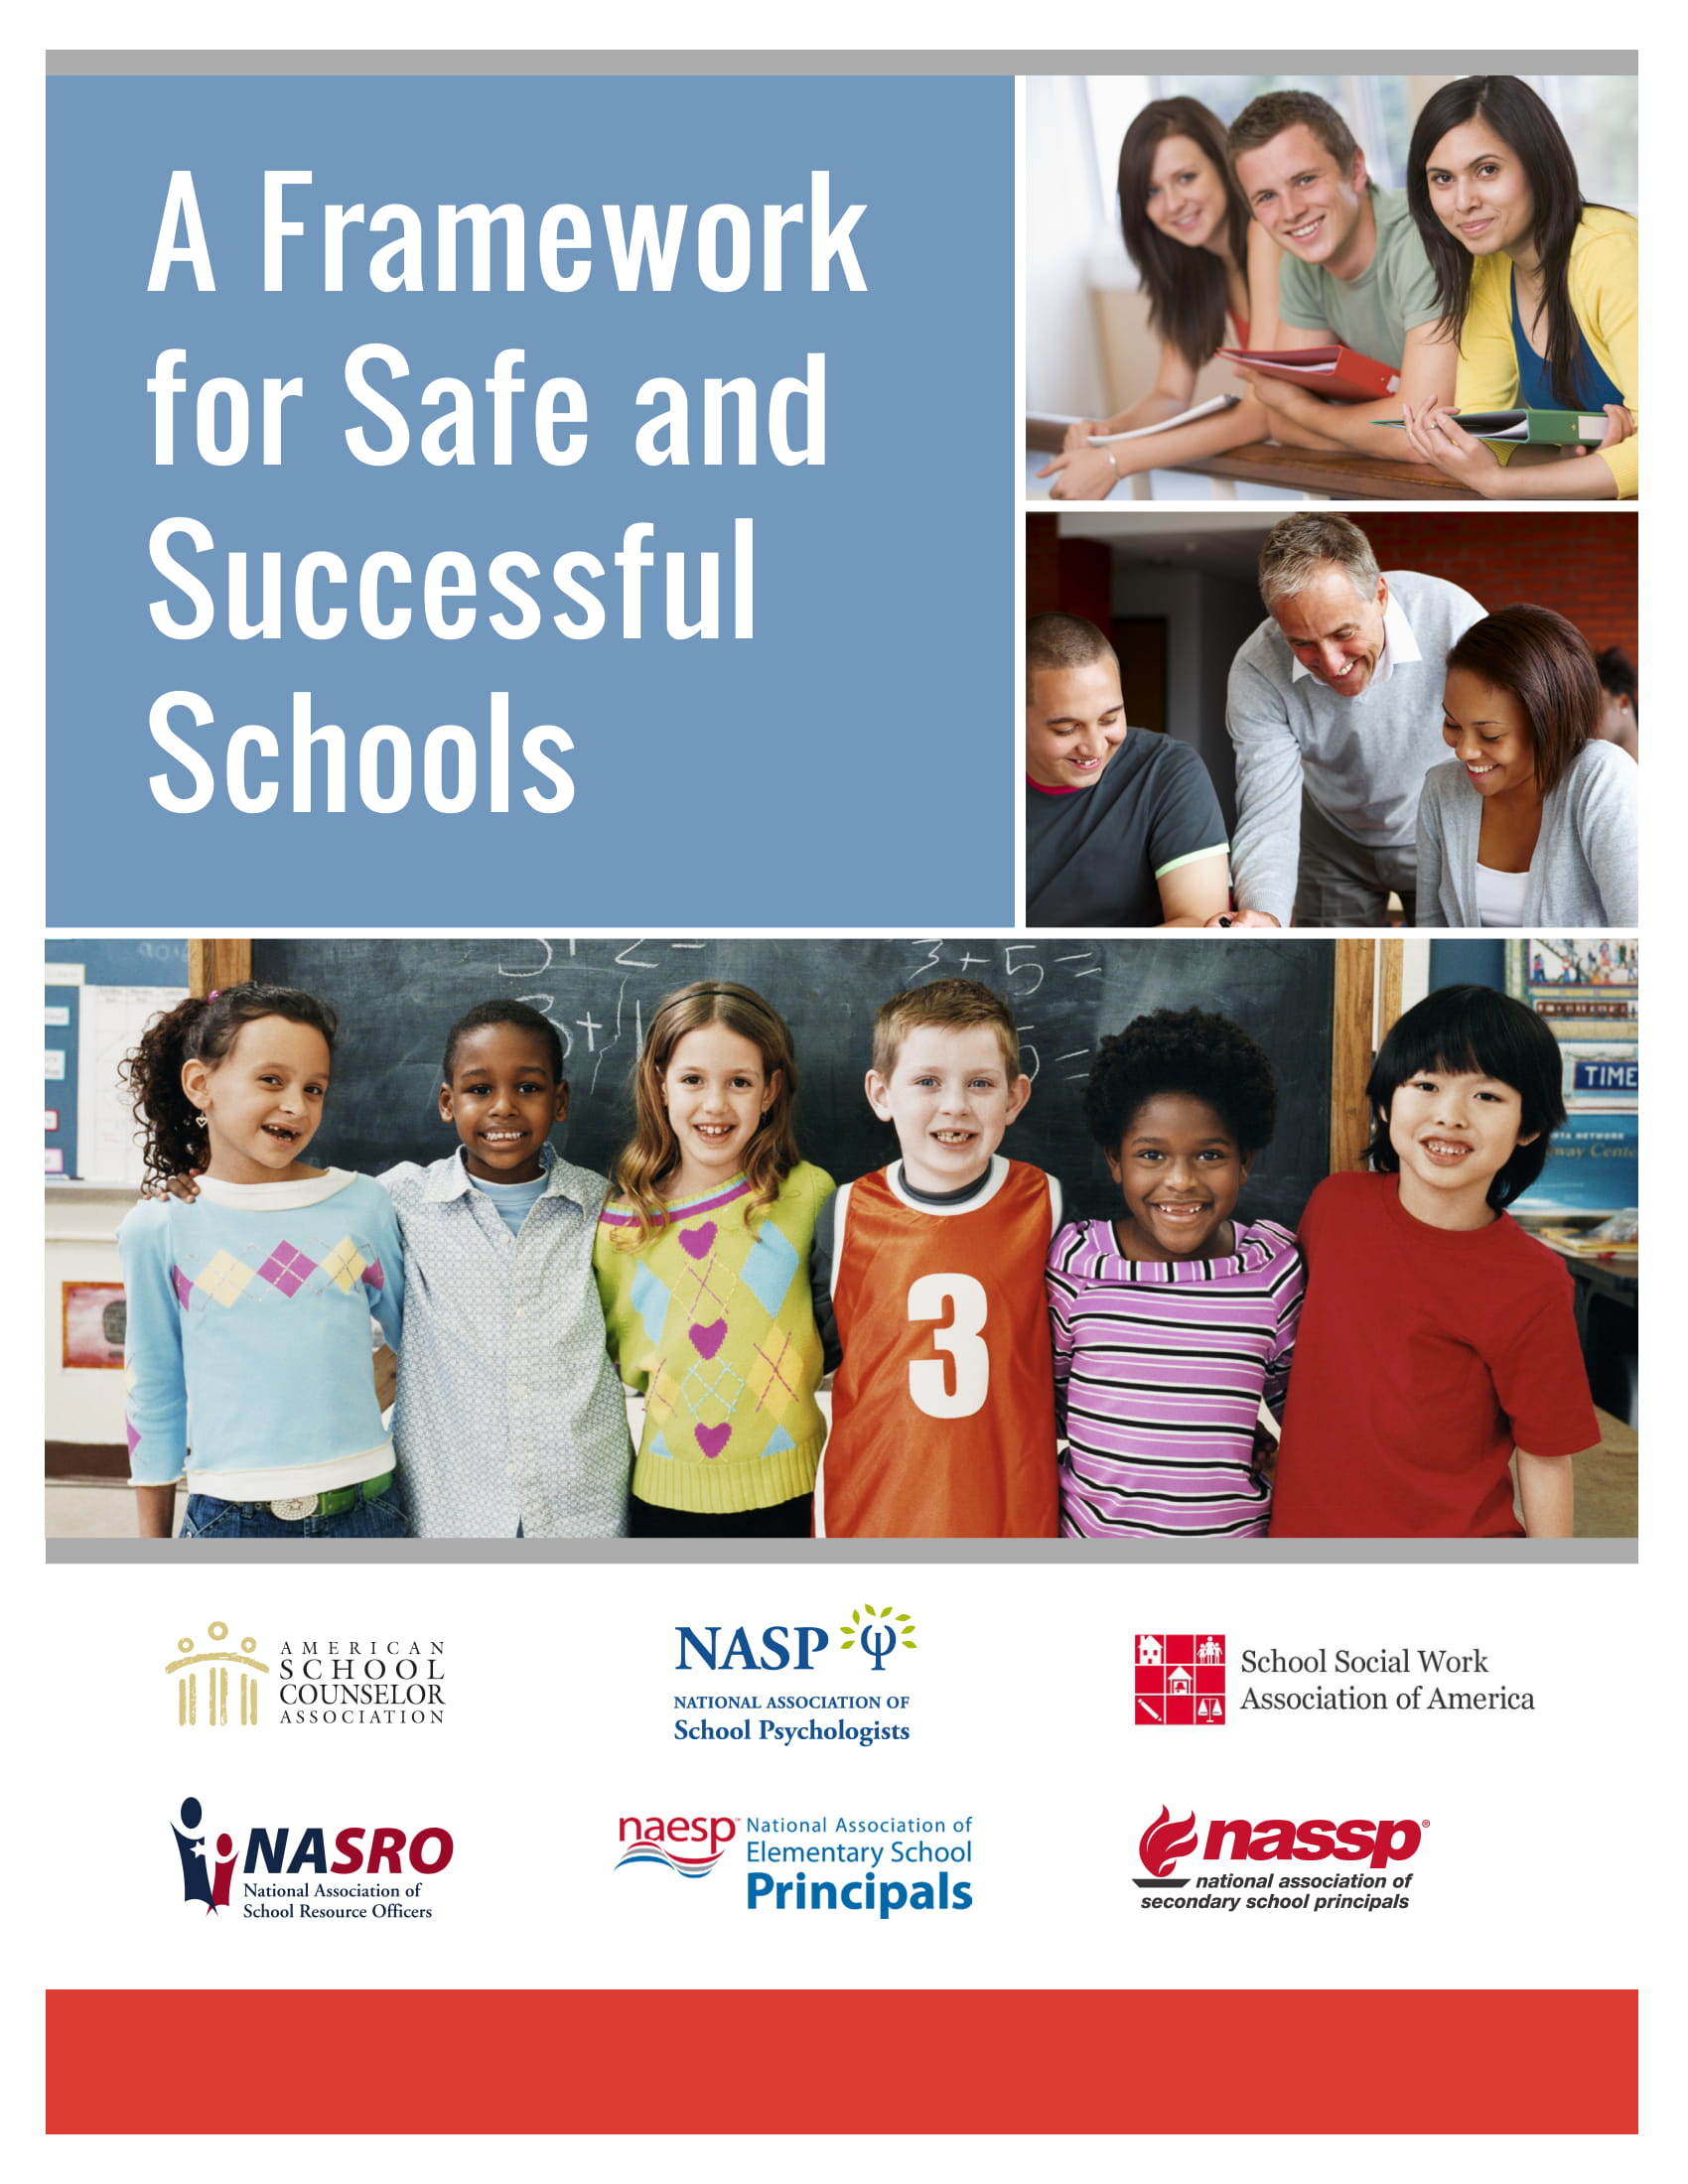 Framework_for_Safe_and_Successful_School_Environments (1)-01.jpg